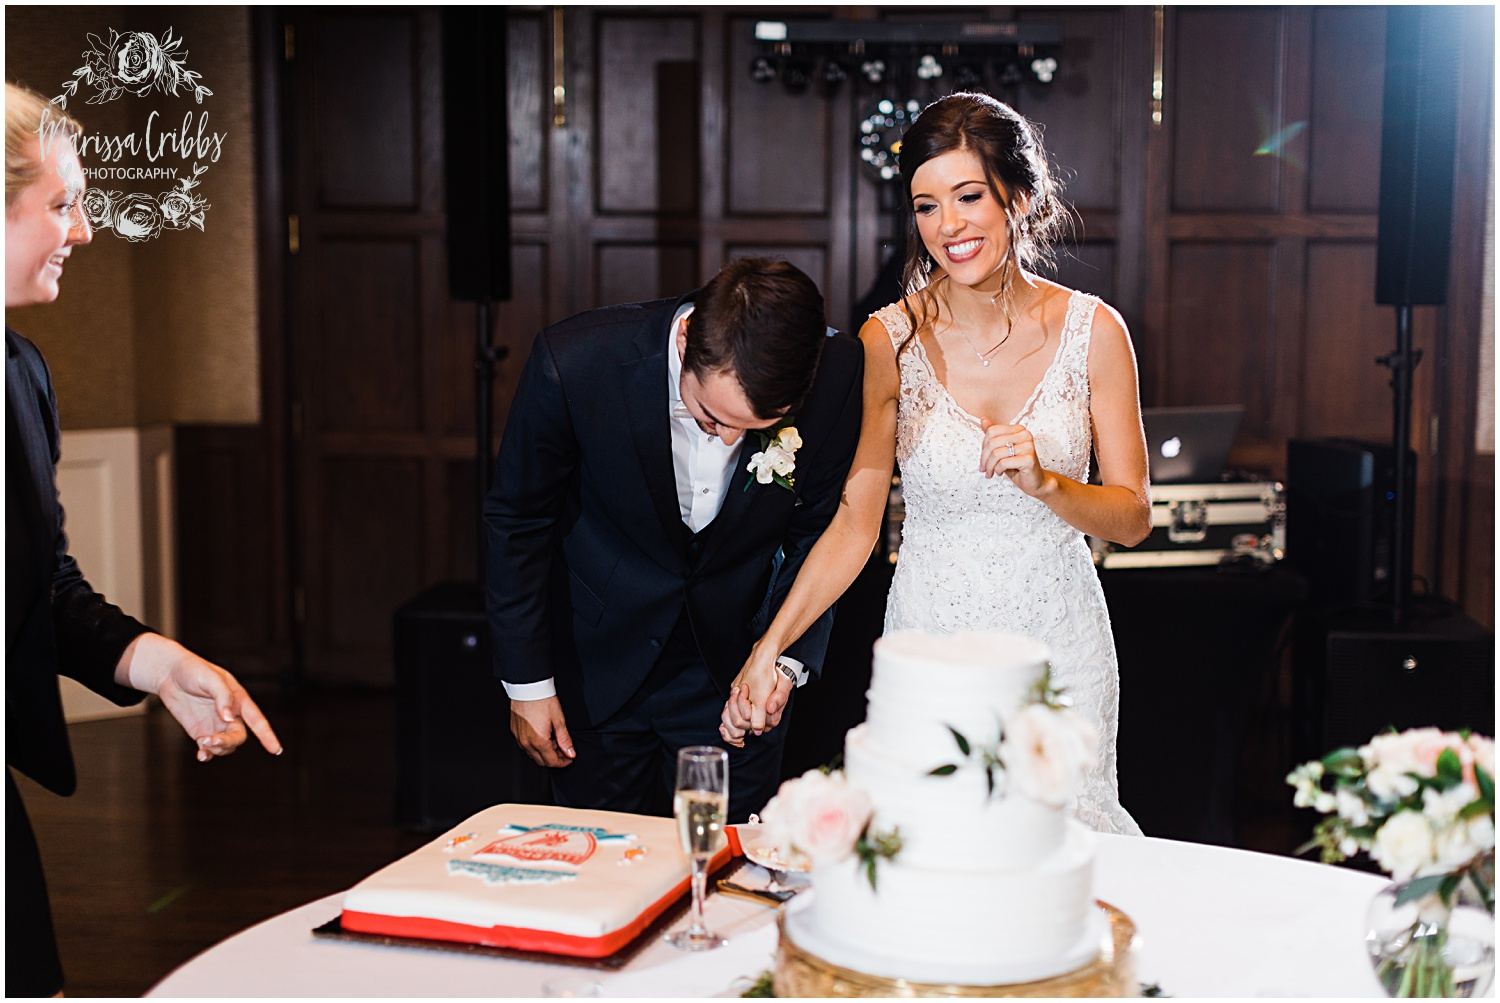 MEGAN & DEREK WEDDING BLOG | MARISSA CRIBBS PHOTOGRAPHY_8210.jpg